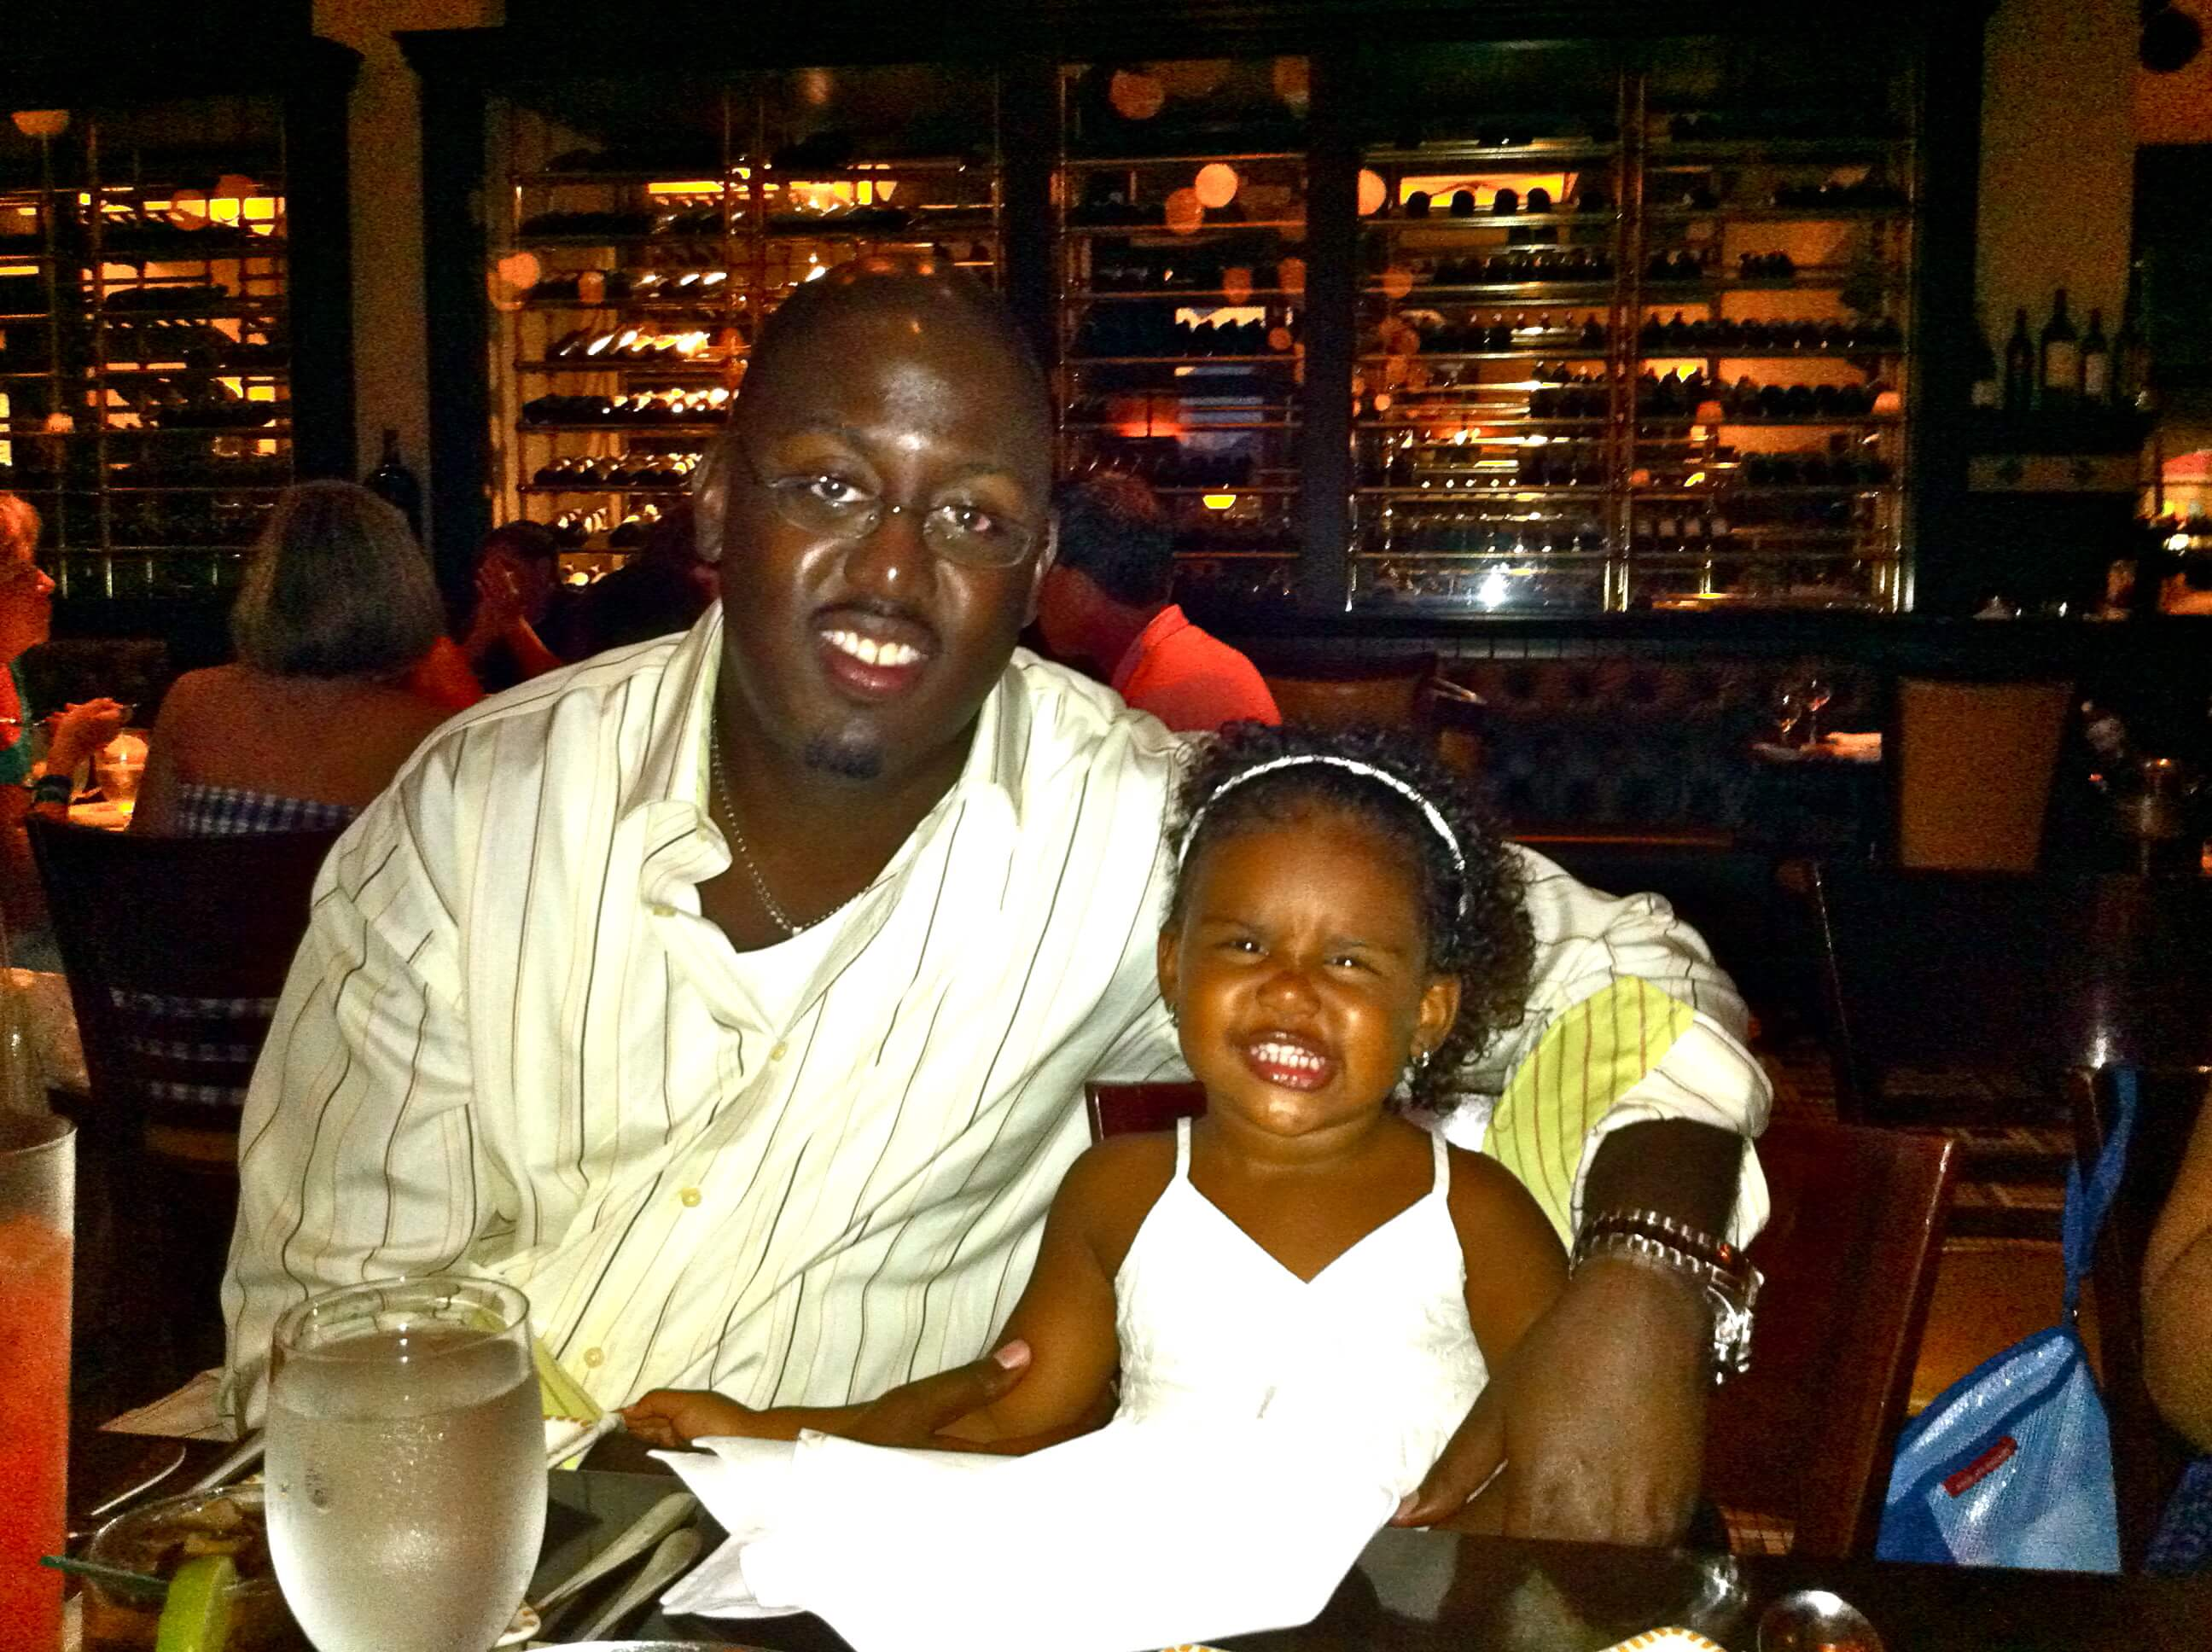 Eddy & Bee at a steak dinner in the bahamas.